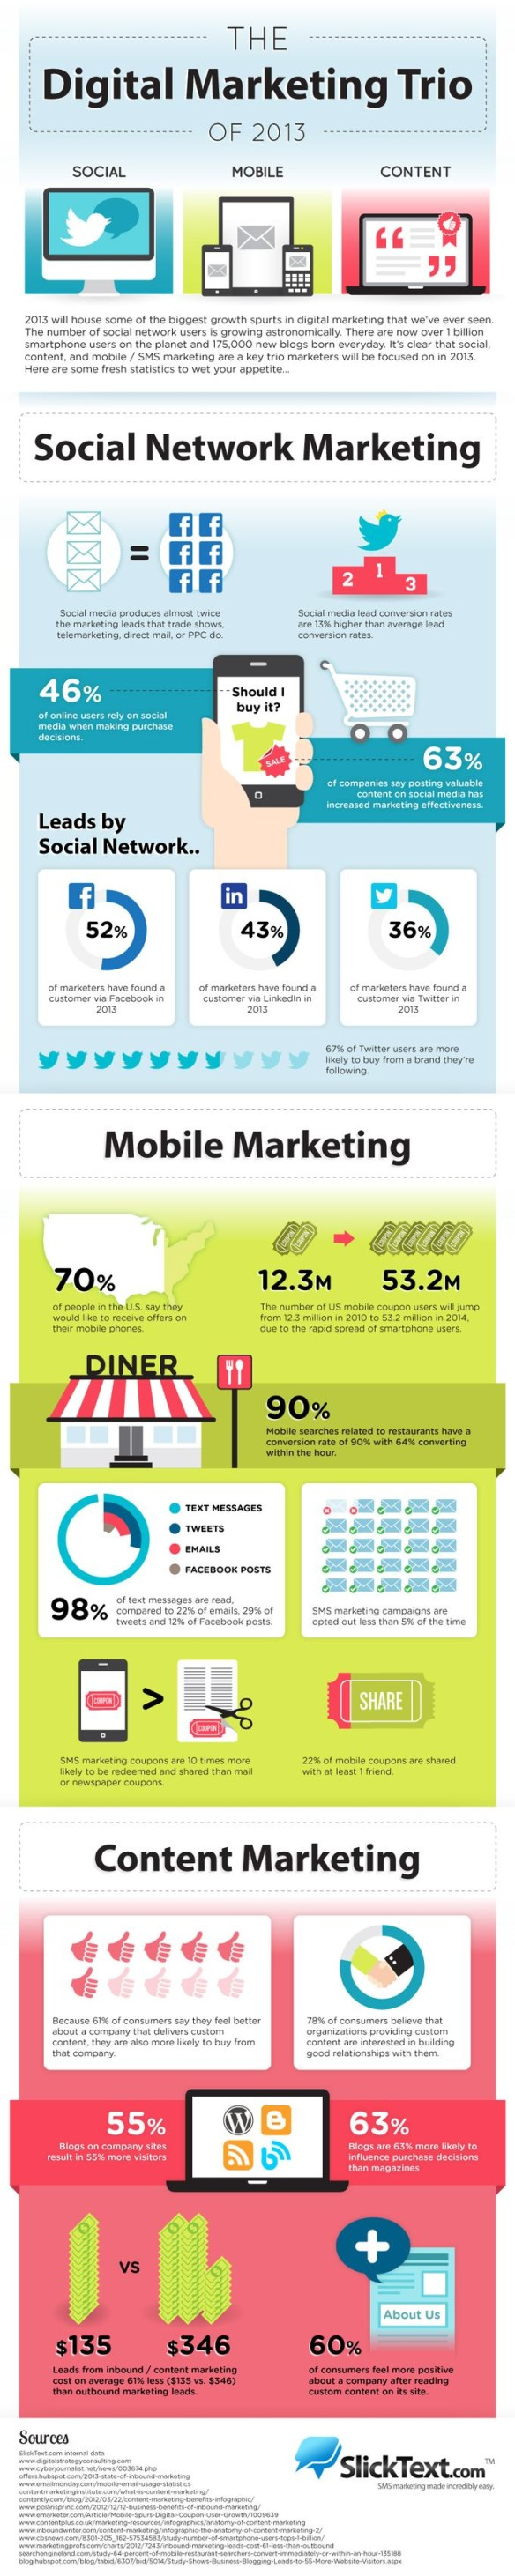 infographic_digital_marketing_trio